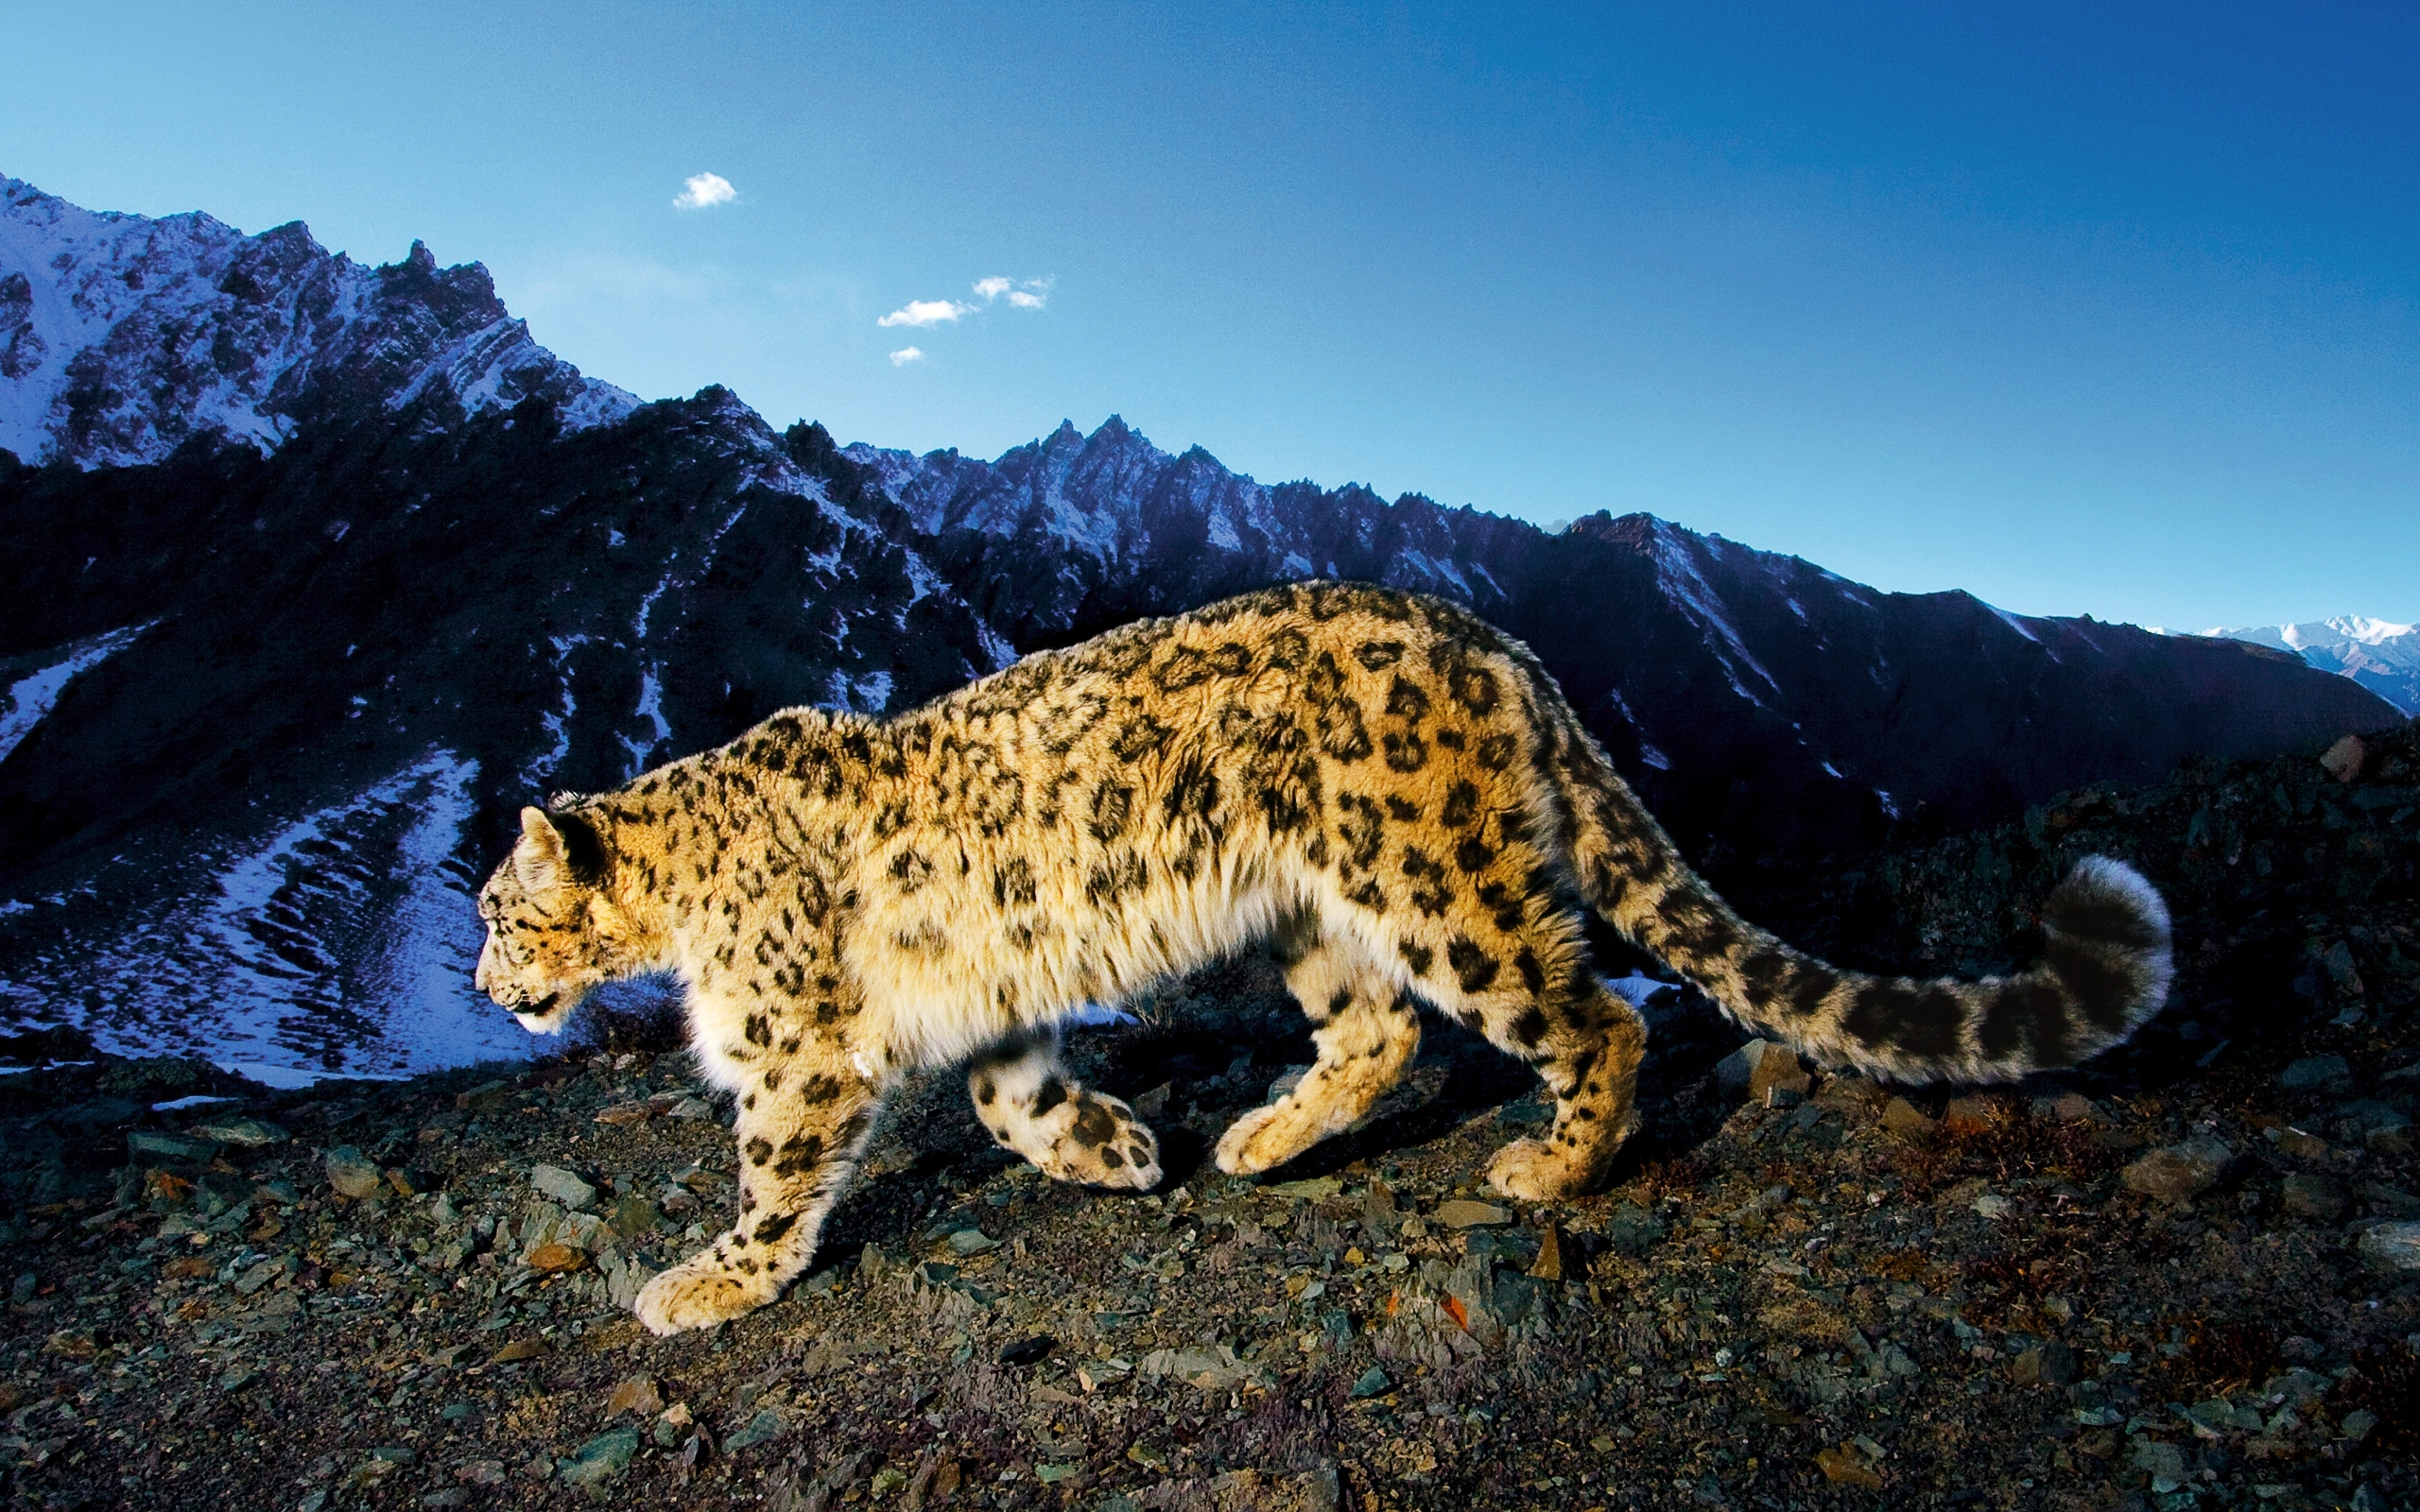 39950 download wallpaper Animals, Snow Leopard screensavers and pictures for free